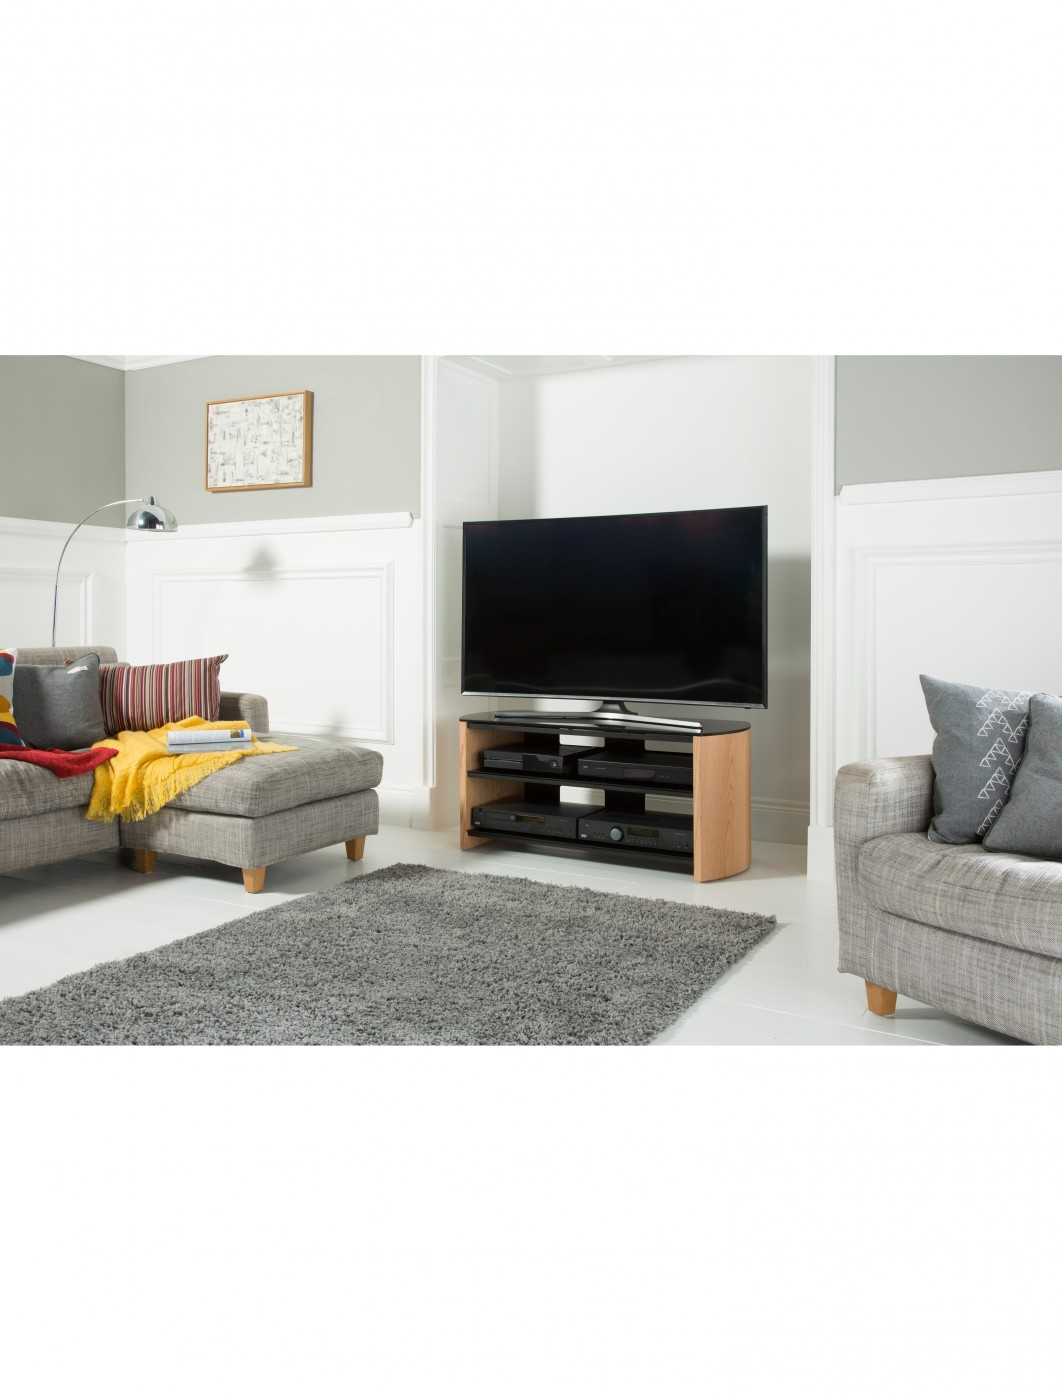 Alphason FW1100-LO/B Finewoods TV Stand